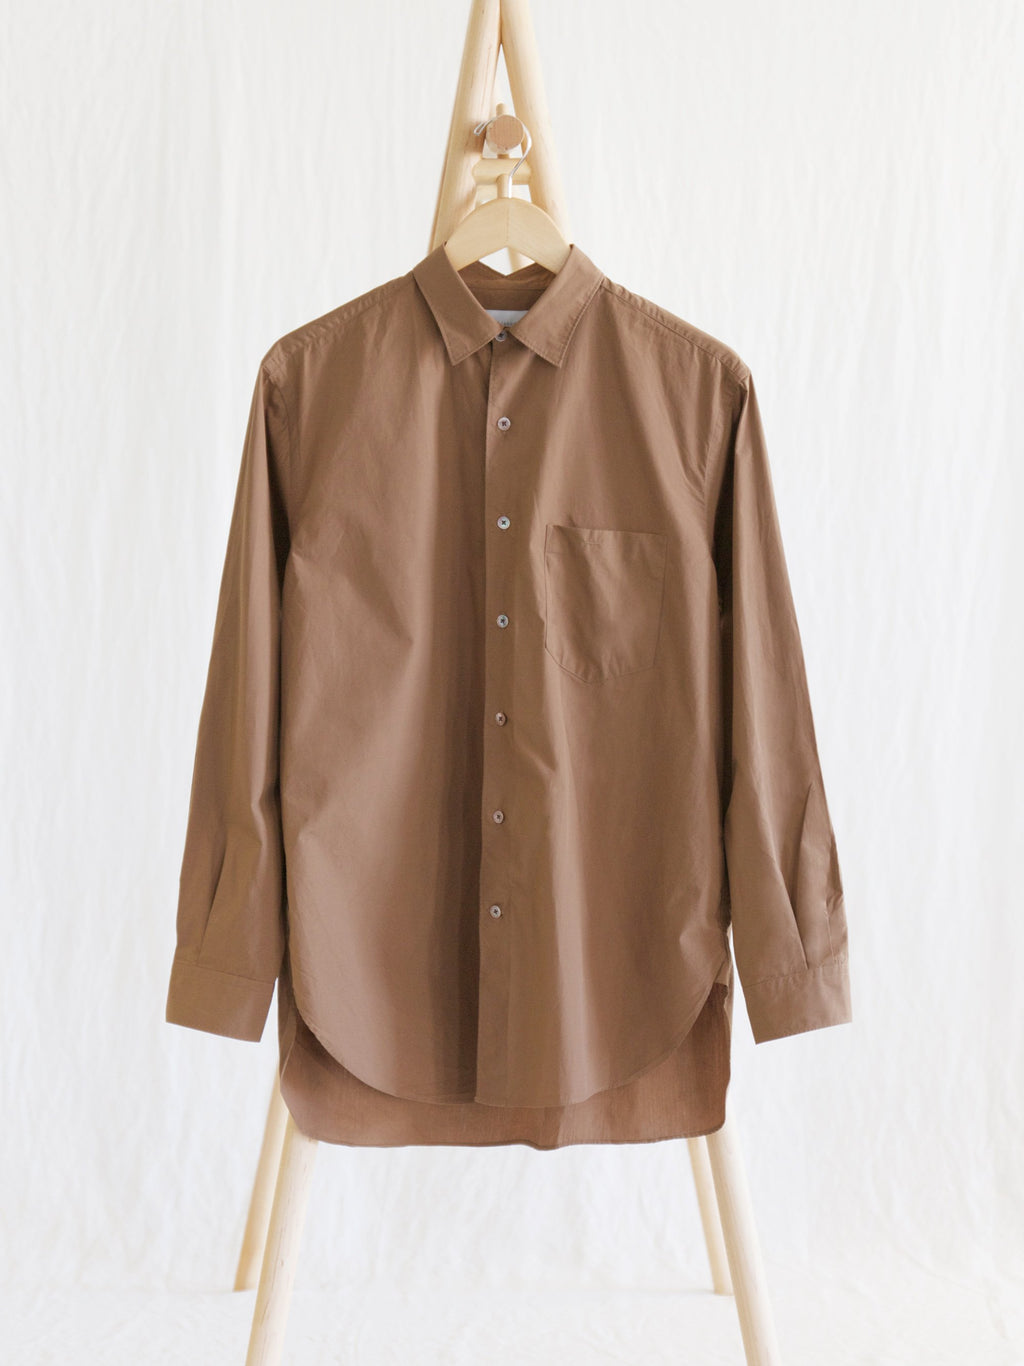 Namu Shop - Phlannel Anonymous Shirt - Brick Brown